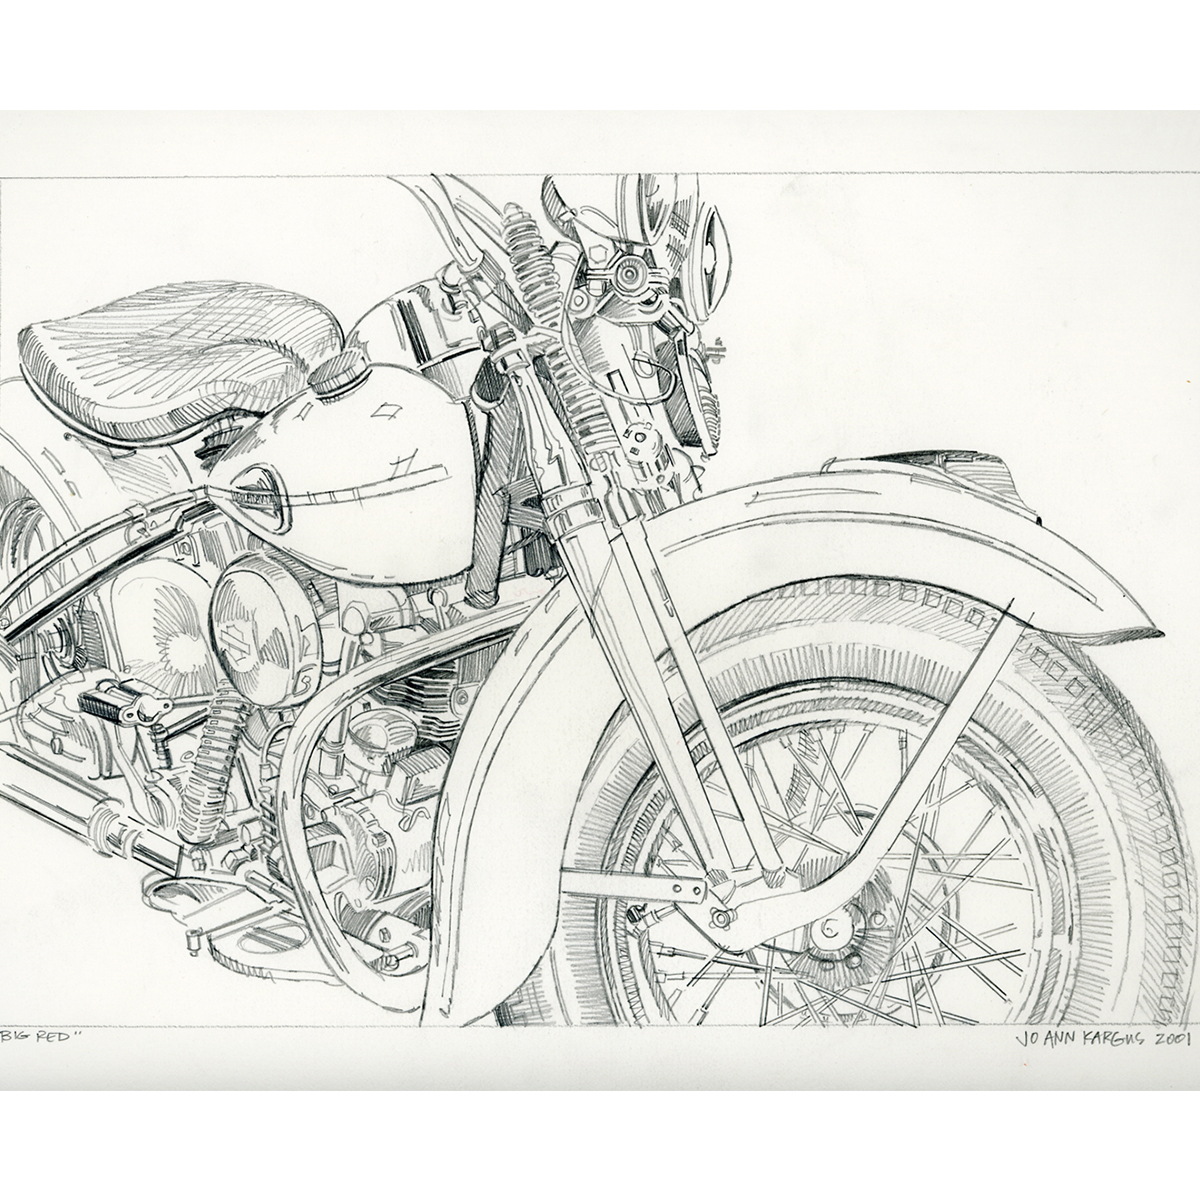 moto art. 2-big-red-pencil moto art